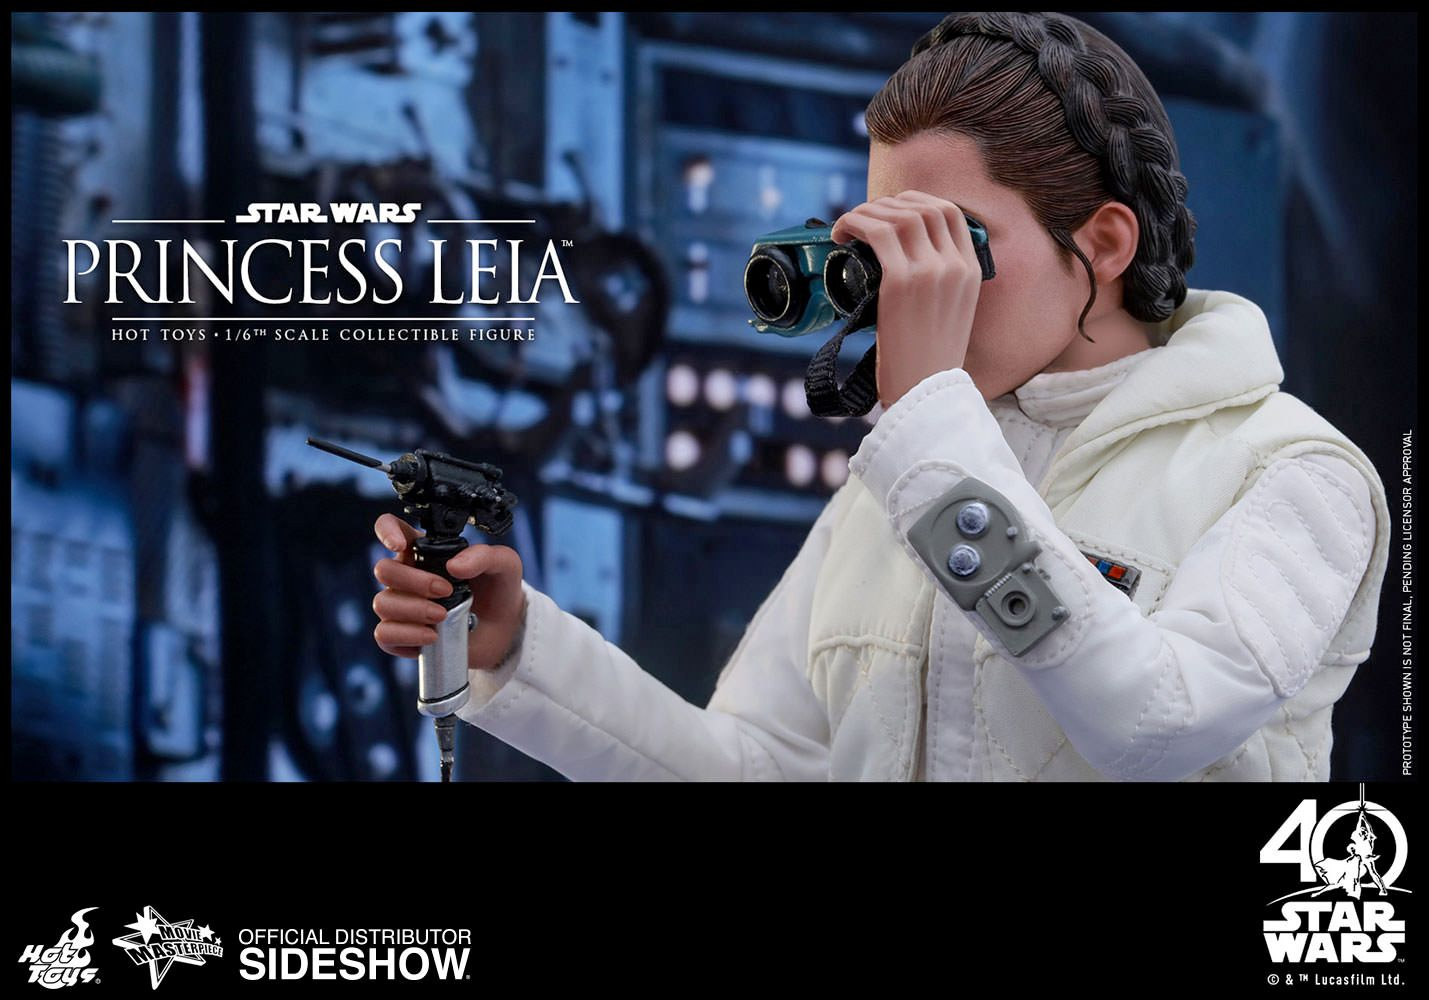 Hot-Toys-Princess-Leia-Collectible-Figure-Episode-V-10